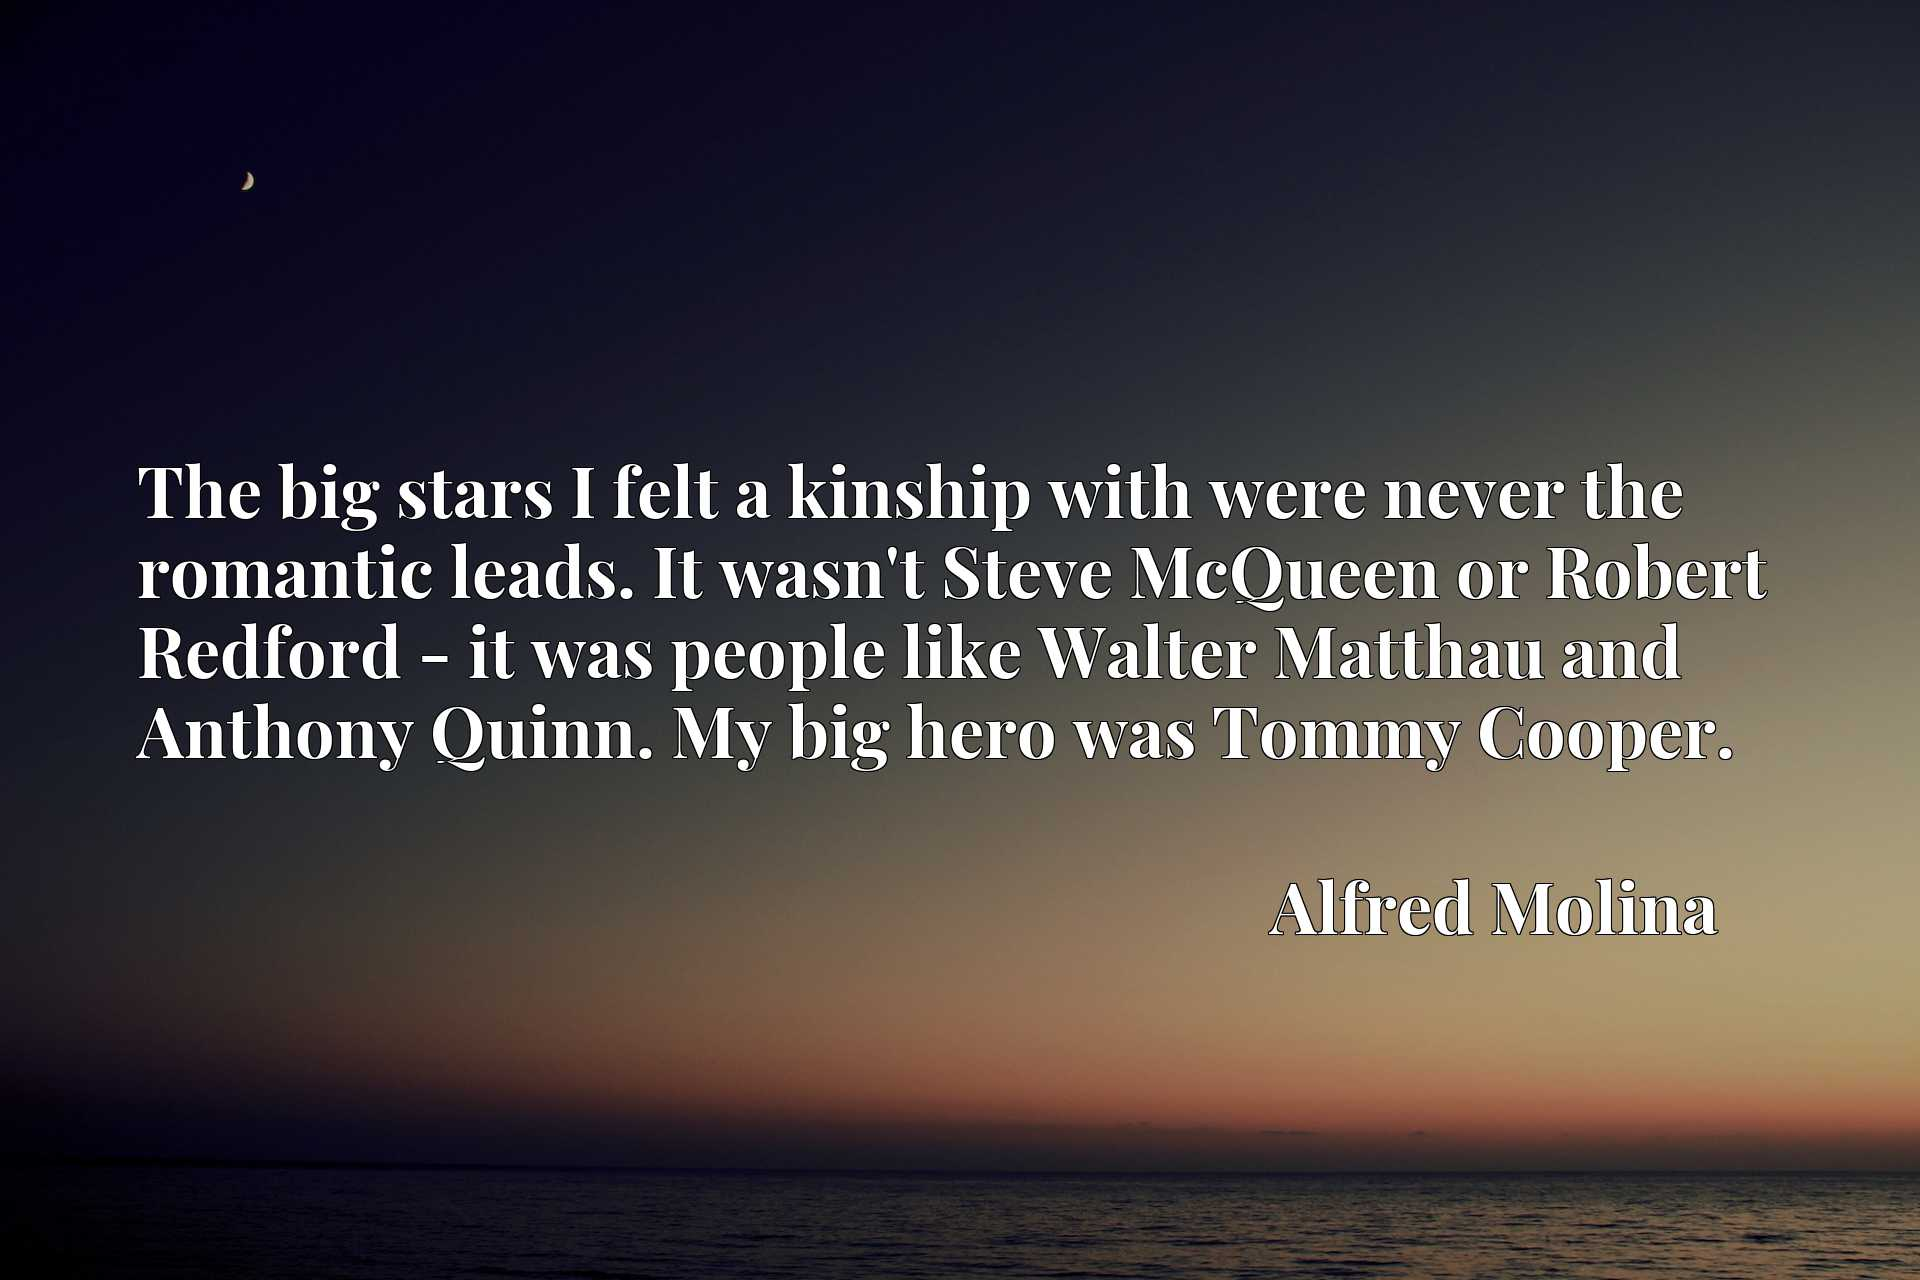 The big stars I felt a kinship with were never the romantic leads. It wasn't Steve McQueen or Robert Redford - it was people like Walter Matthau and Anthony Quinn. My big hero was Tommy Cooper.